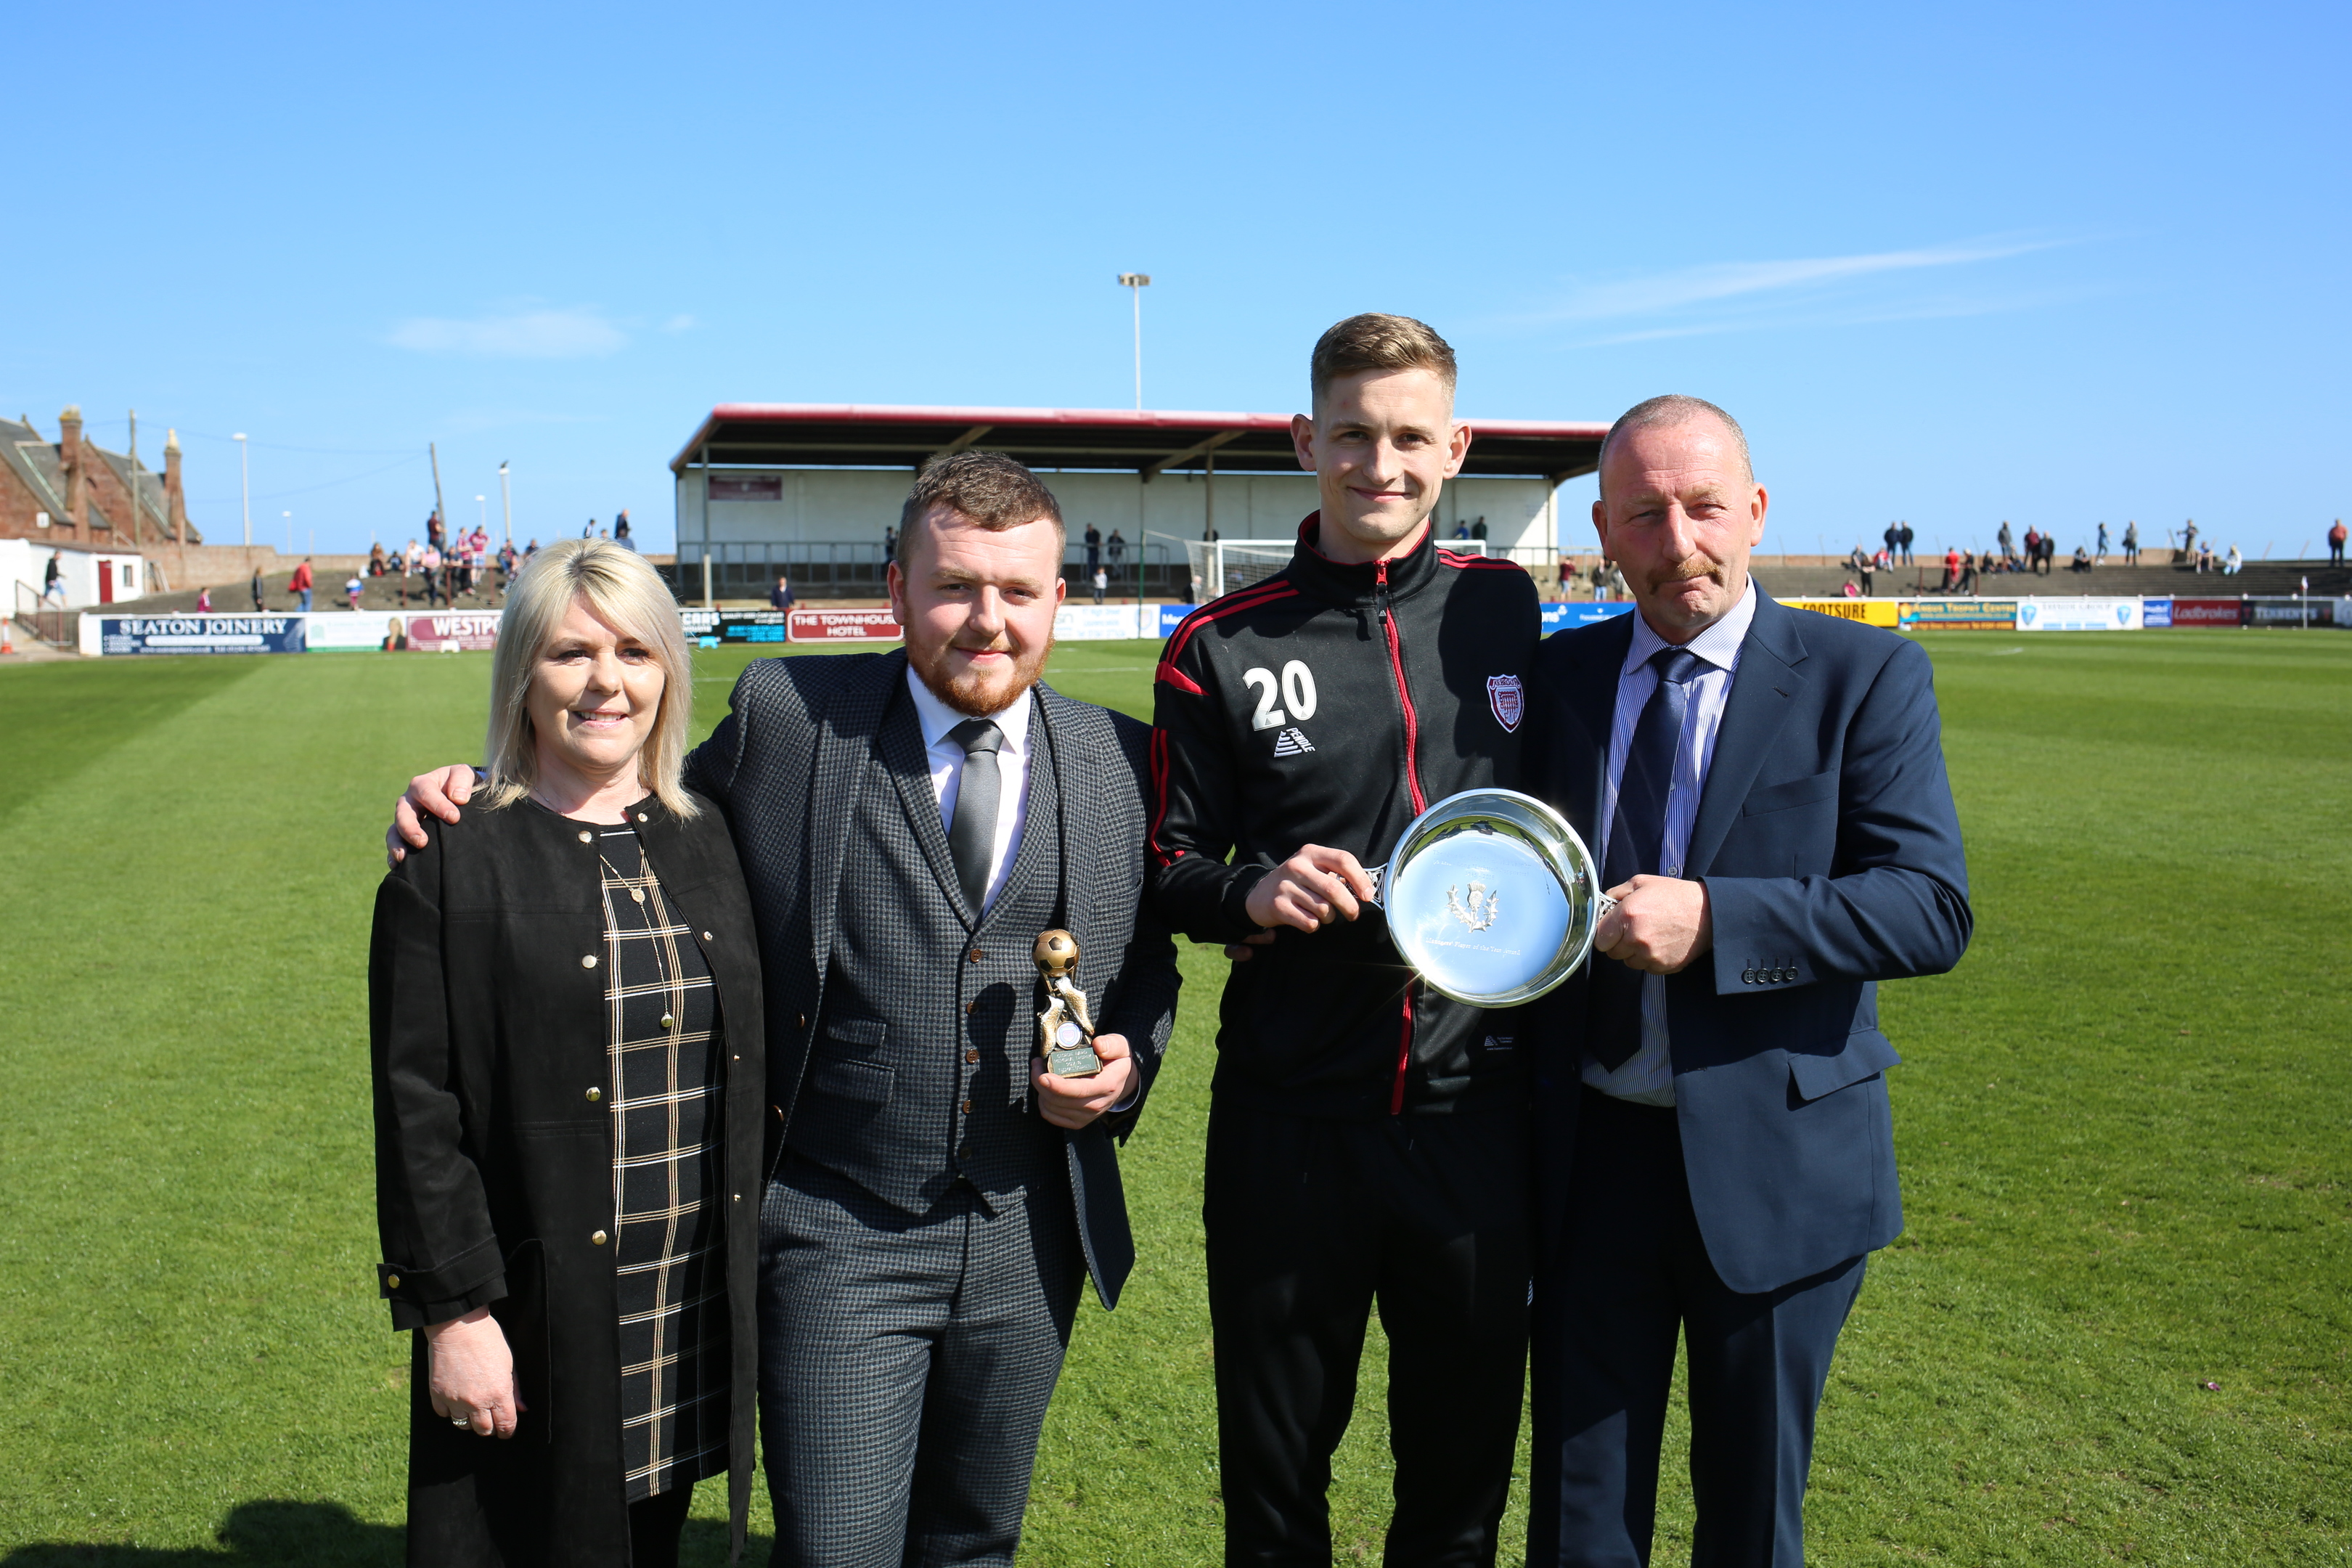 Linda Baird and Reece Baird with Thomas O'Brien being presented with the Geordie Baird Memorial Trophy as the manager's Player of the Year by George Baird.